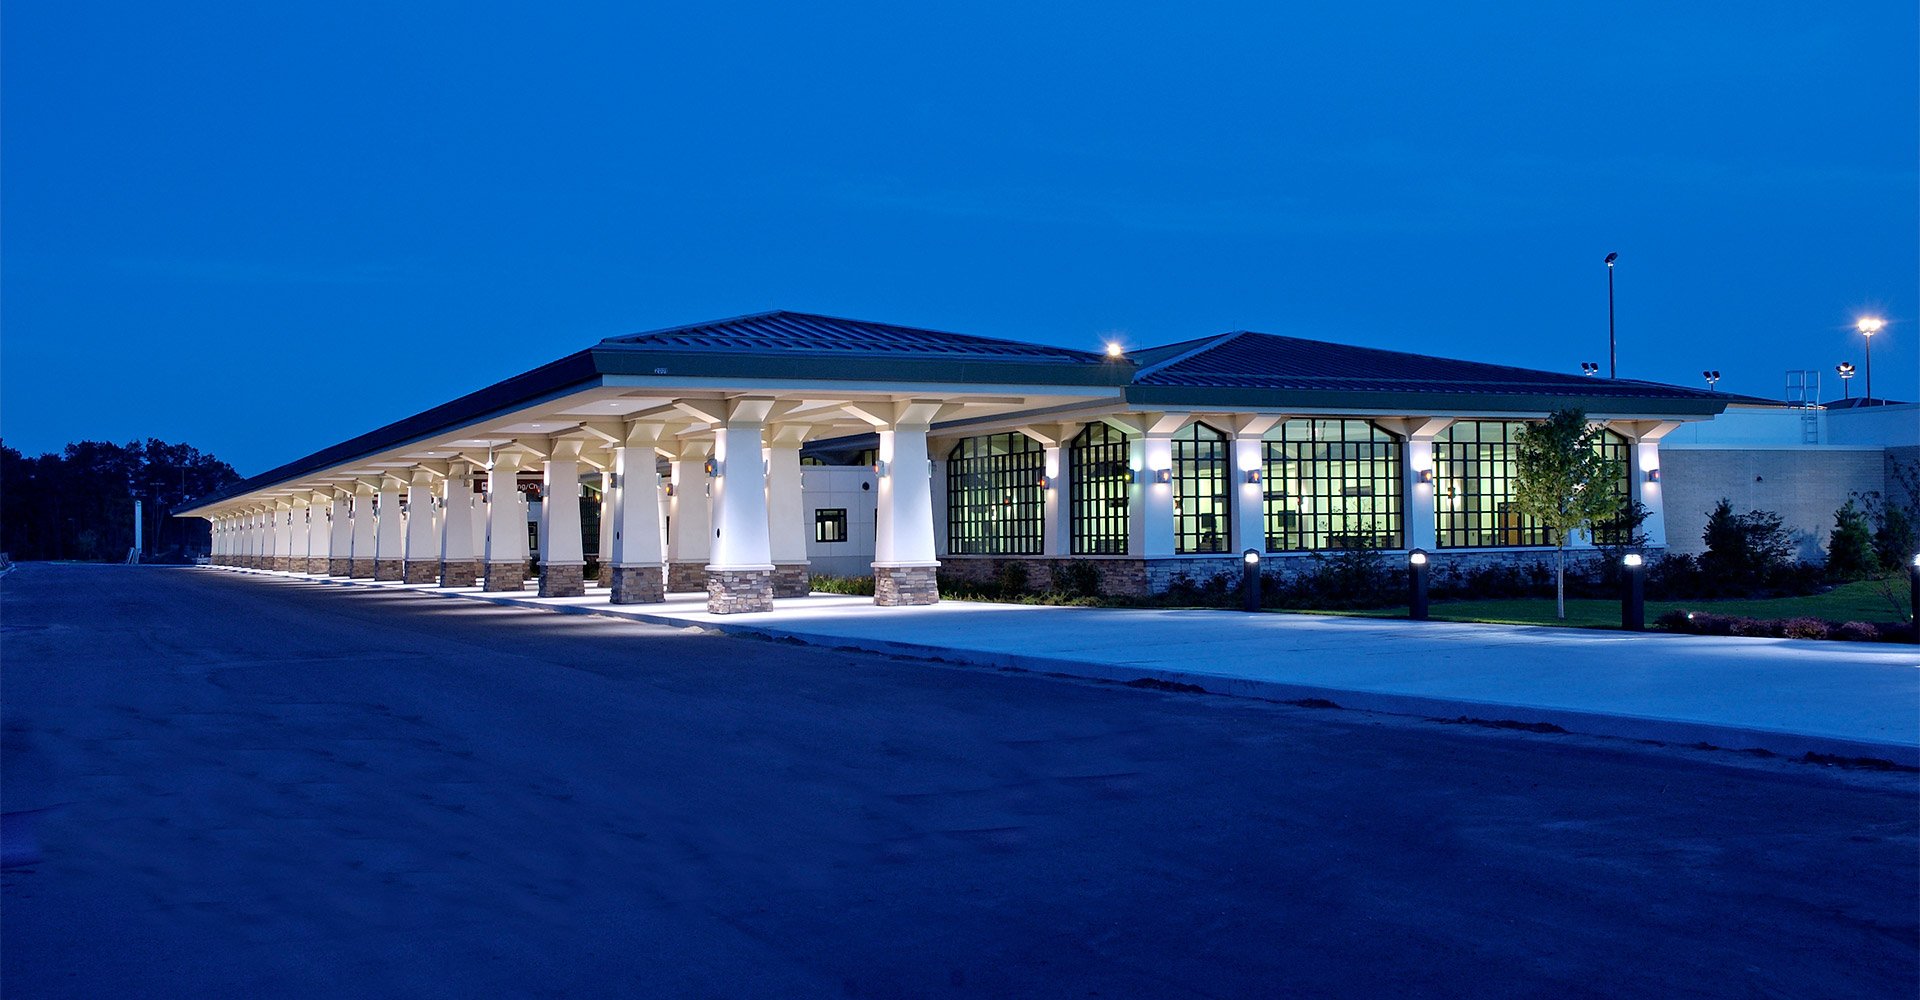 Exterior of Cherry Capital Airport at night.